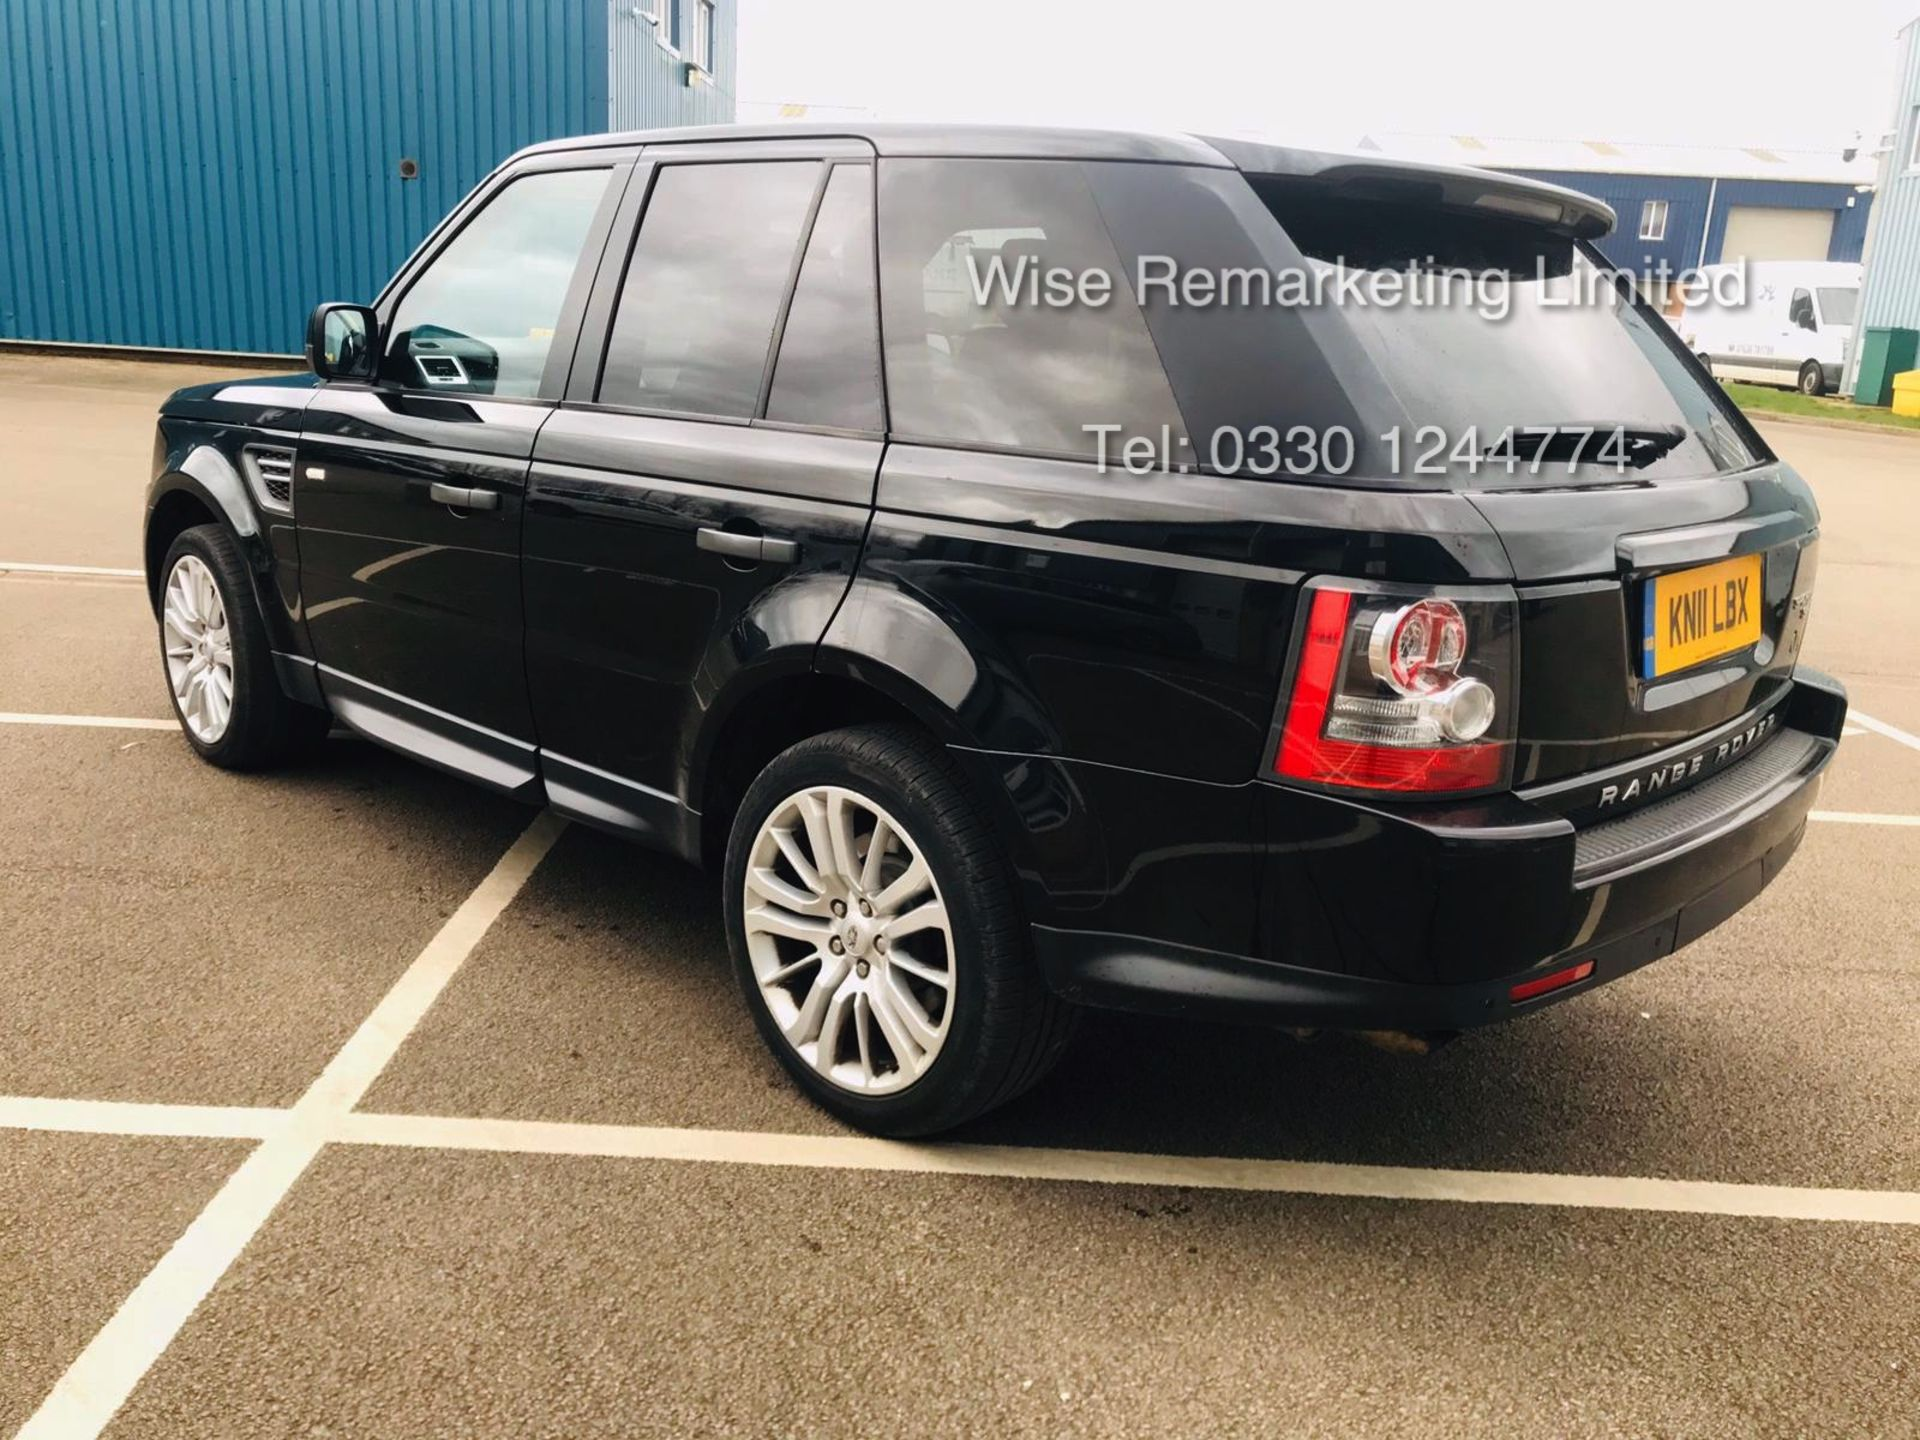 Range Rover Sport SE 3.0 TDV6 Automatic - 2011 11 Reg - 1 Keeper From New - Service History - Image 4 of 21